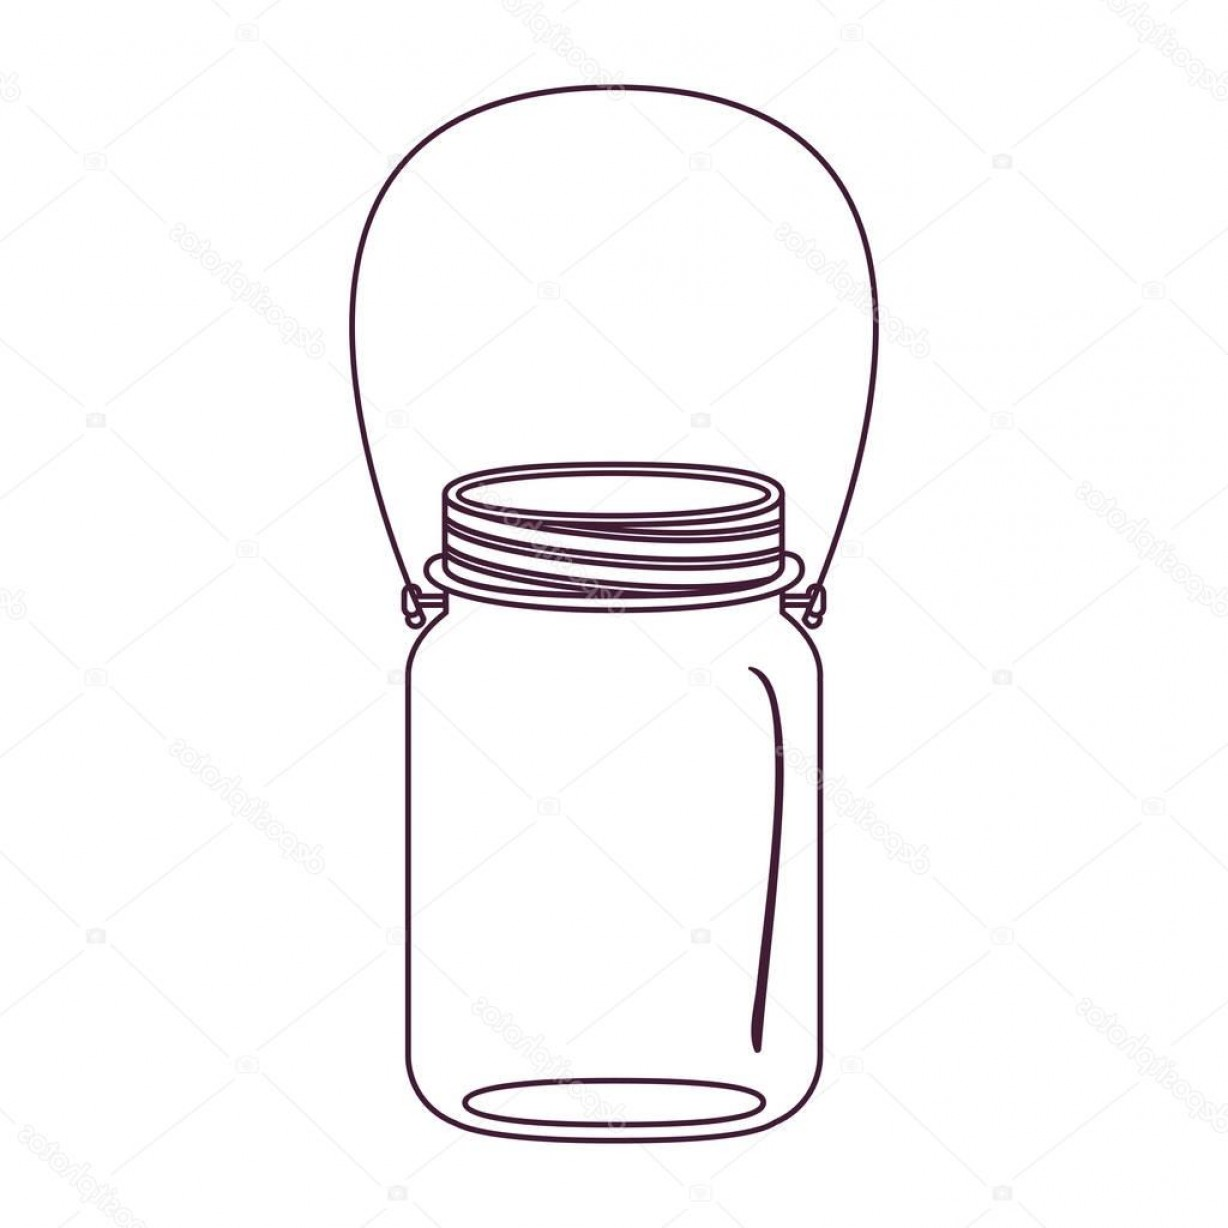 Mason Jar Outline Vector: Stock Illustration Silhouette Glass Jar Of Jam